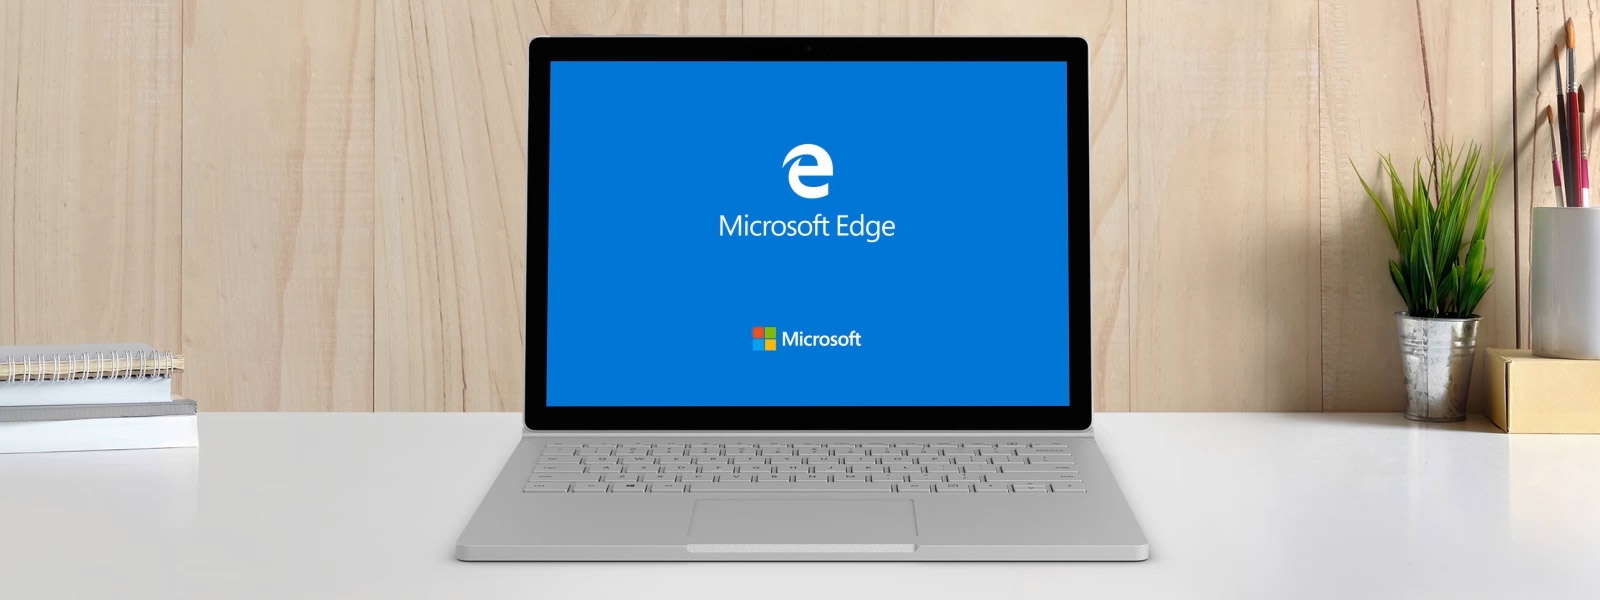 Computer monitor showing multiple open tabs in Microsoft Edge browser.